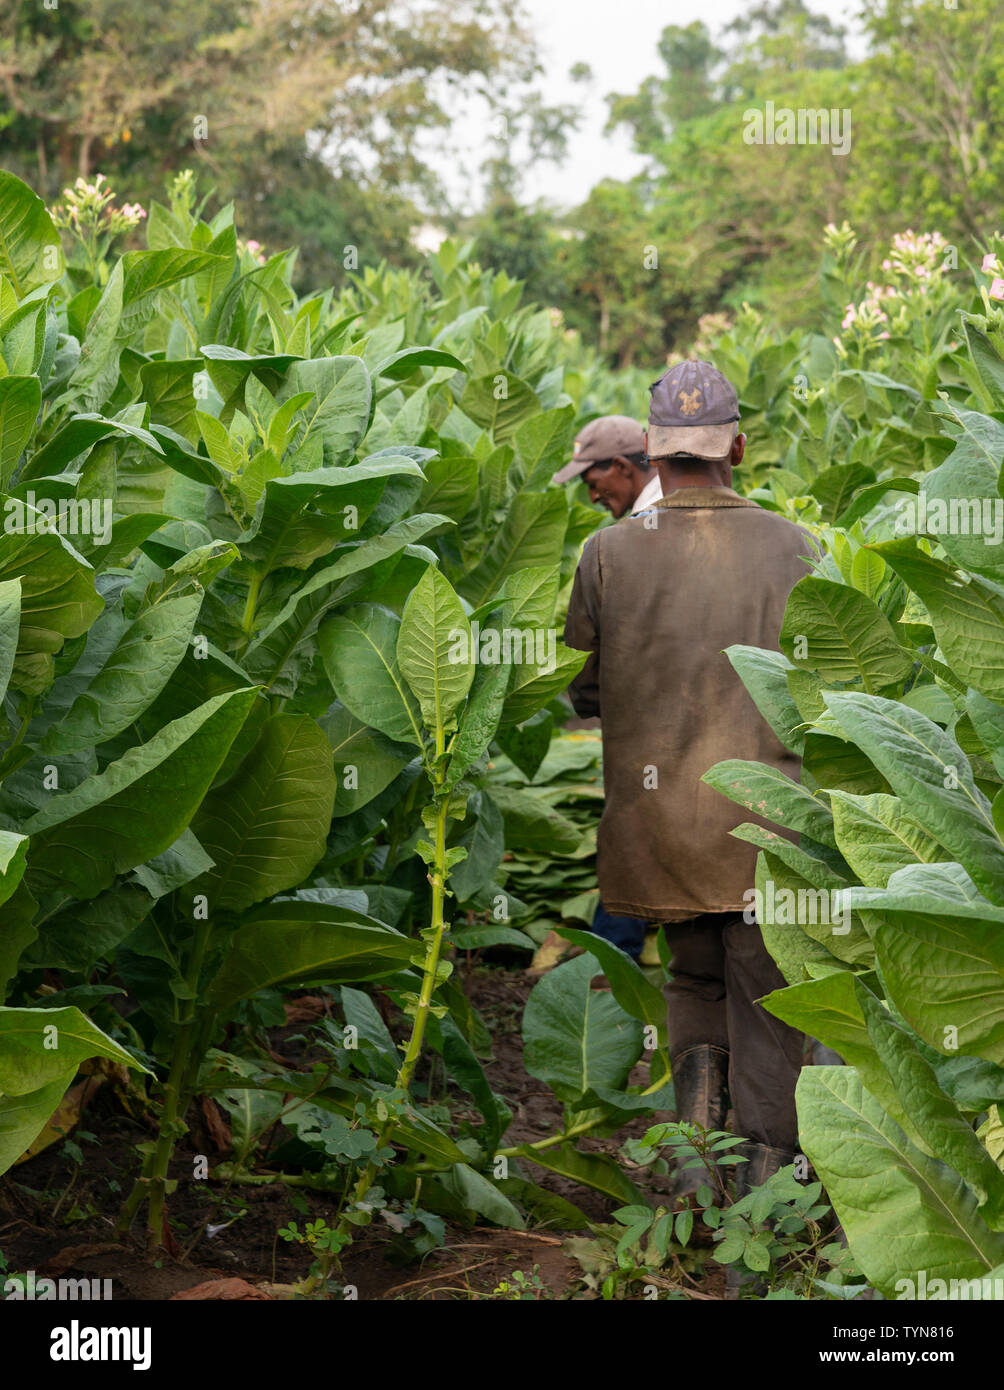 Two farm workers picking tobacco leaves at the rural village of San Juan y Martinez, Pinar del Rio Province, Cuba, Caribbean - Stock Image